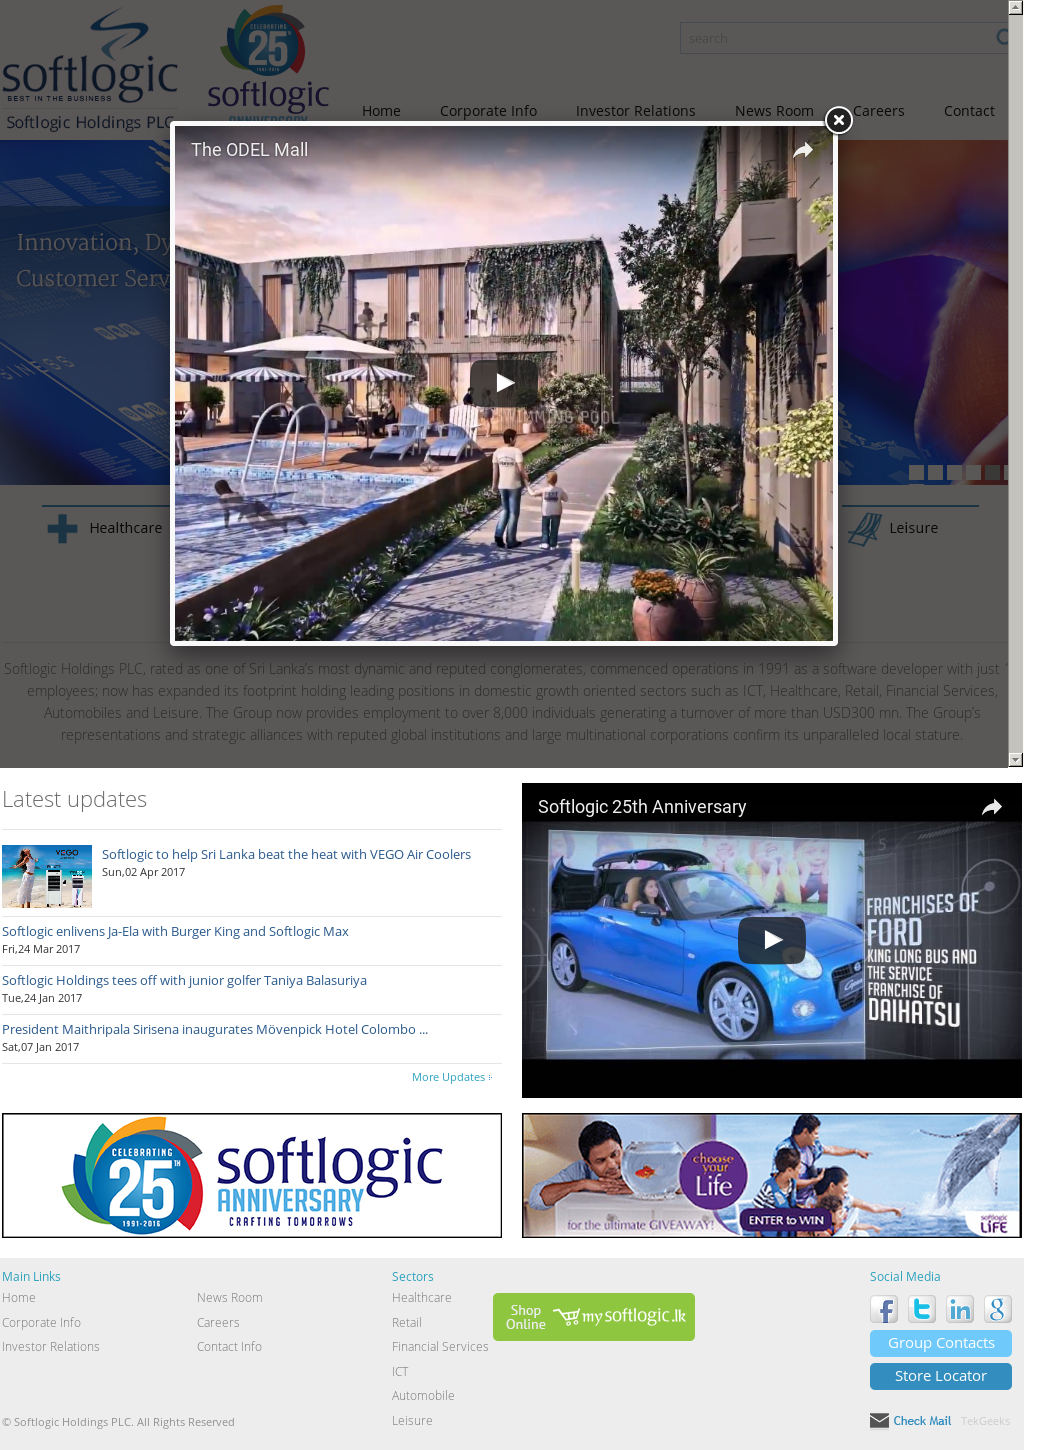 Softlogic Competitors, Revenue and Employees - Owler Company Profile